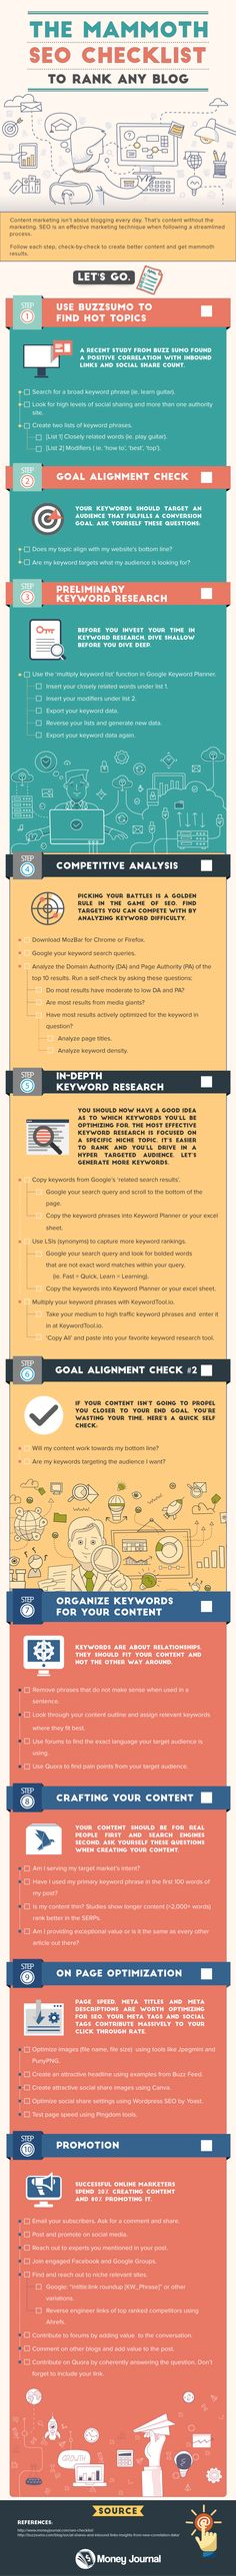 How to Promote Your Website Like a Boss [Infographic] - SEO Website Analysis - Plan for your SEO and track your keywords rank. - How to Promote Your Website Like a Boss [Infographic] Inbound Marketing, Marketing Digital, Content Marketing, Website Analysis, Seo Analysis, Keyword Ranking, Seo For Beginners, Competitive Analysis, Seo Tools